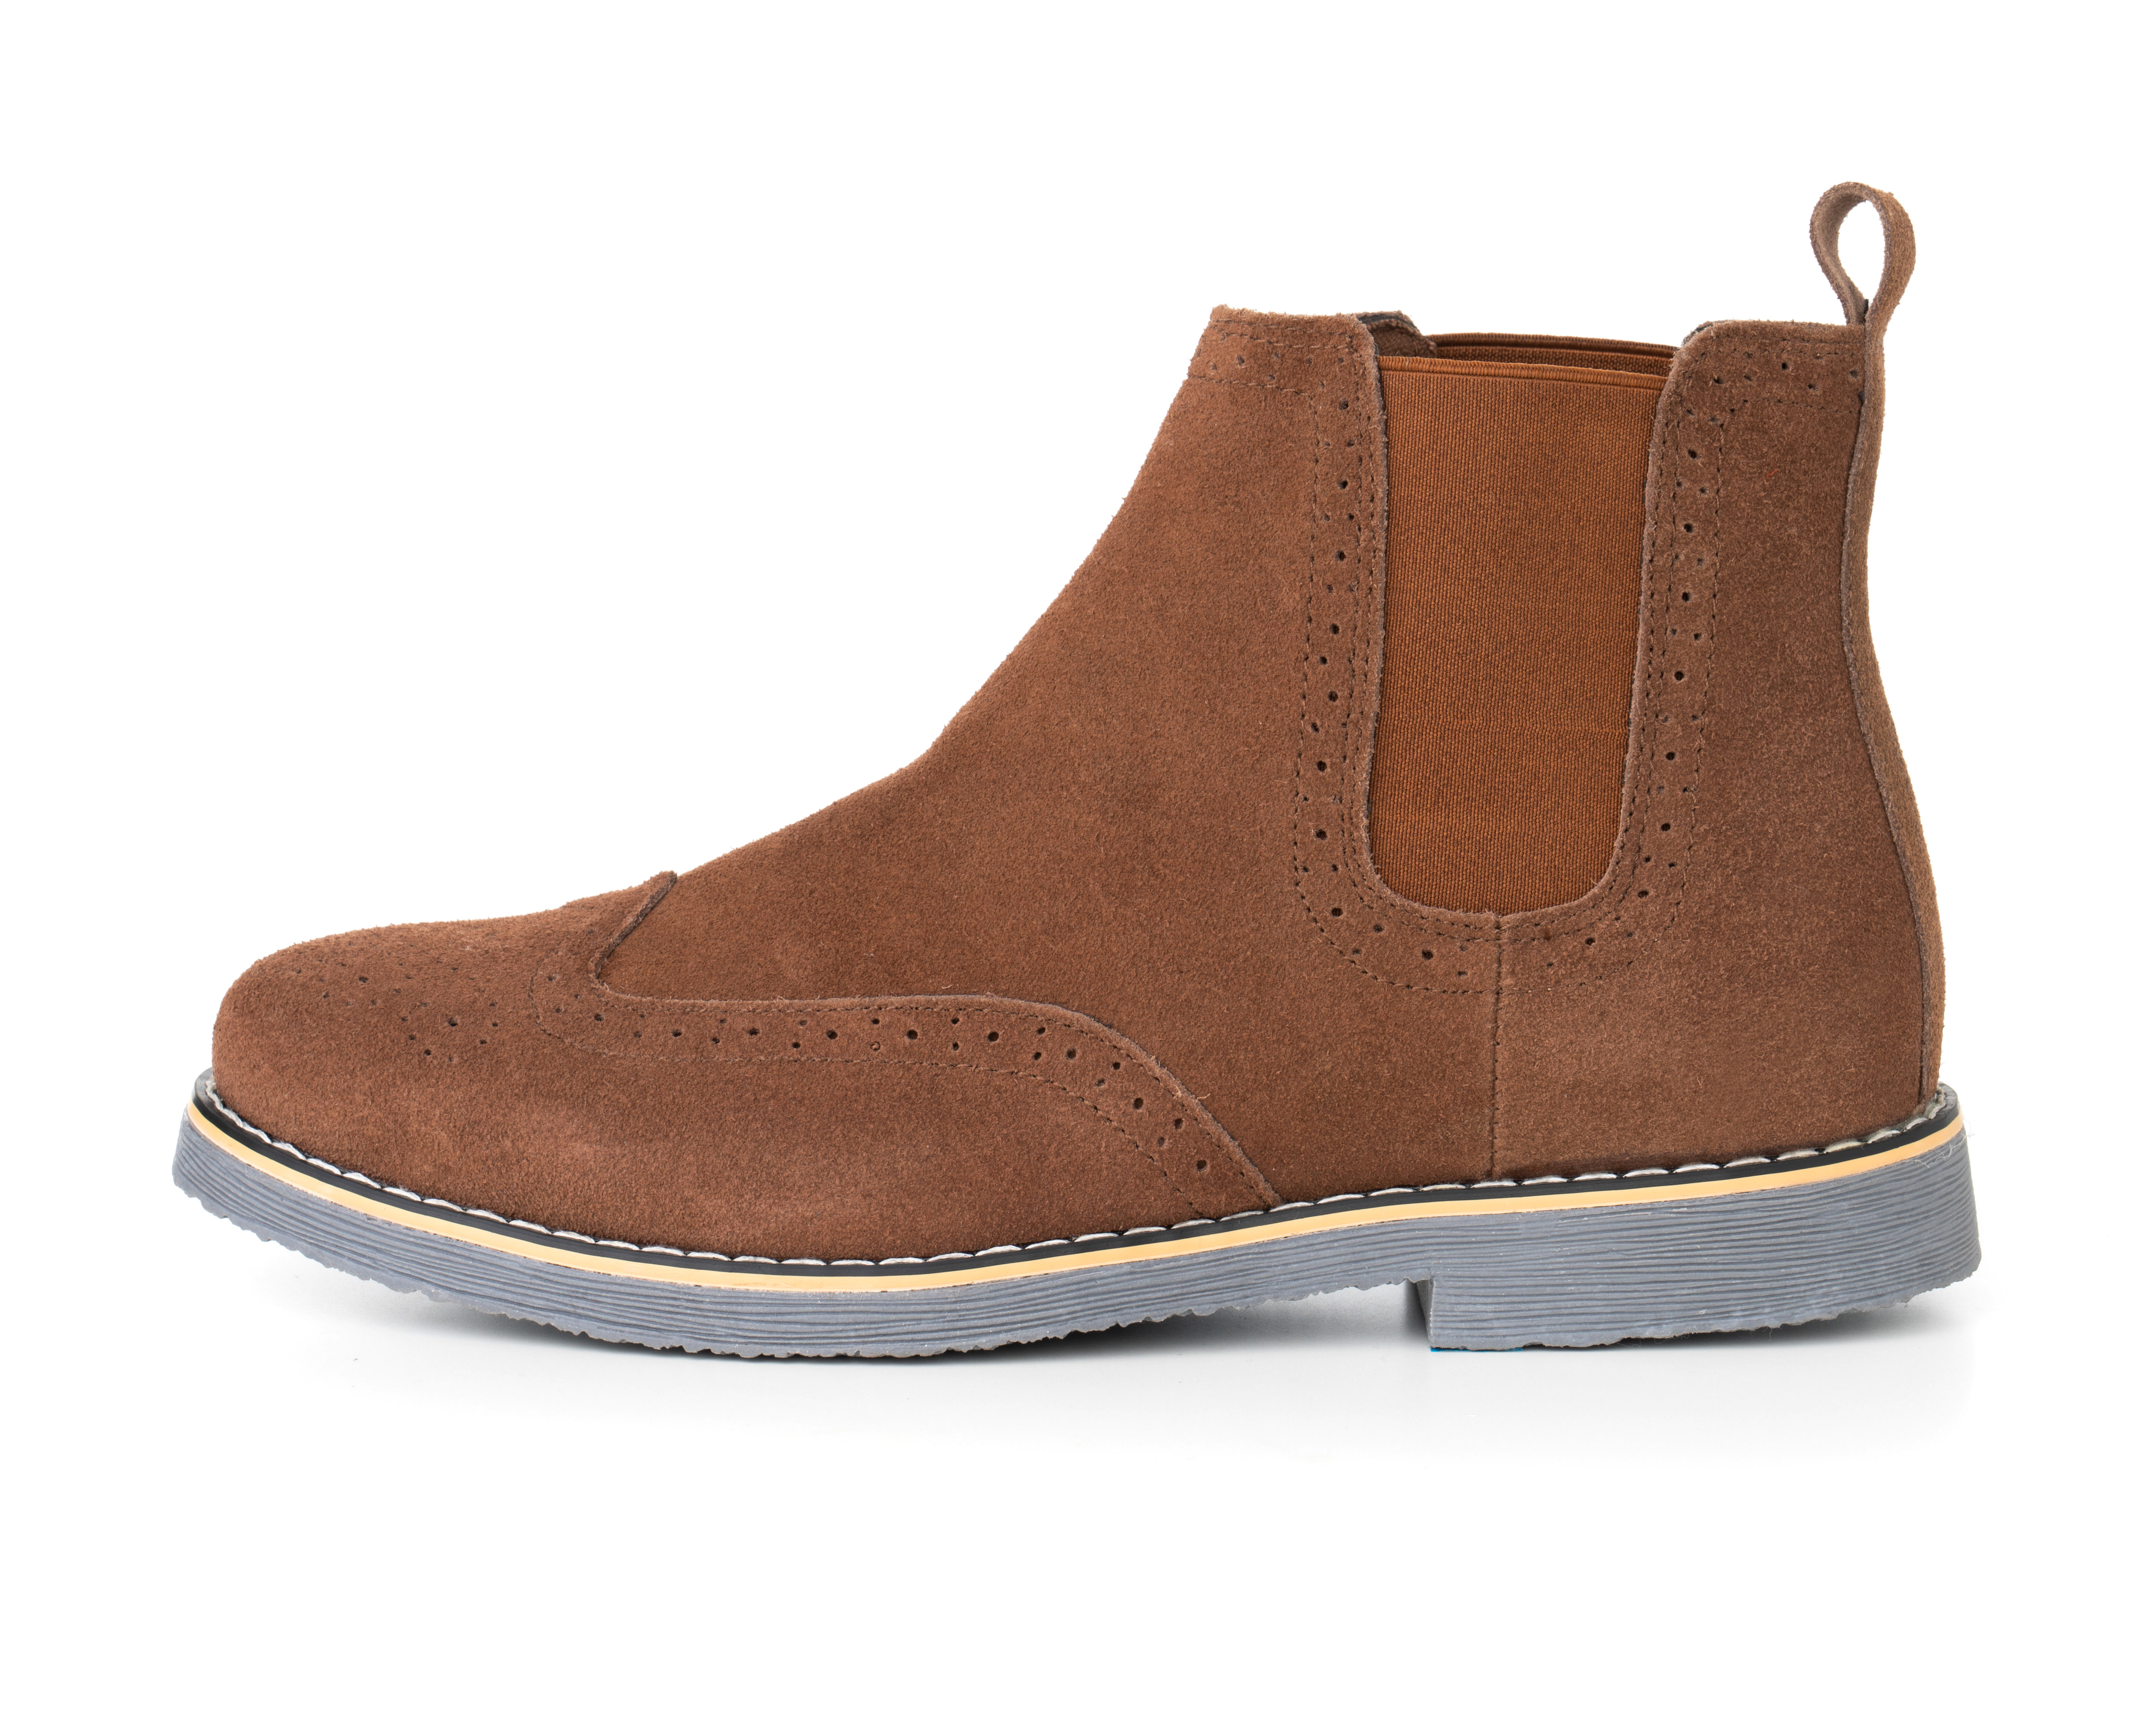 Alpine-Swiss-Mens-Chelsea-Boots-Genuine-Suede-Dress-Ankle-Boots-Wingtip-Shoes miniature 20